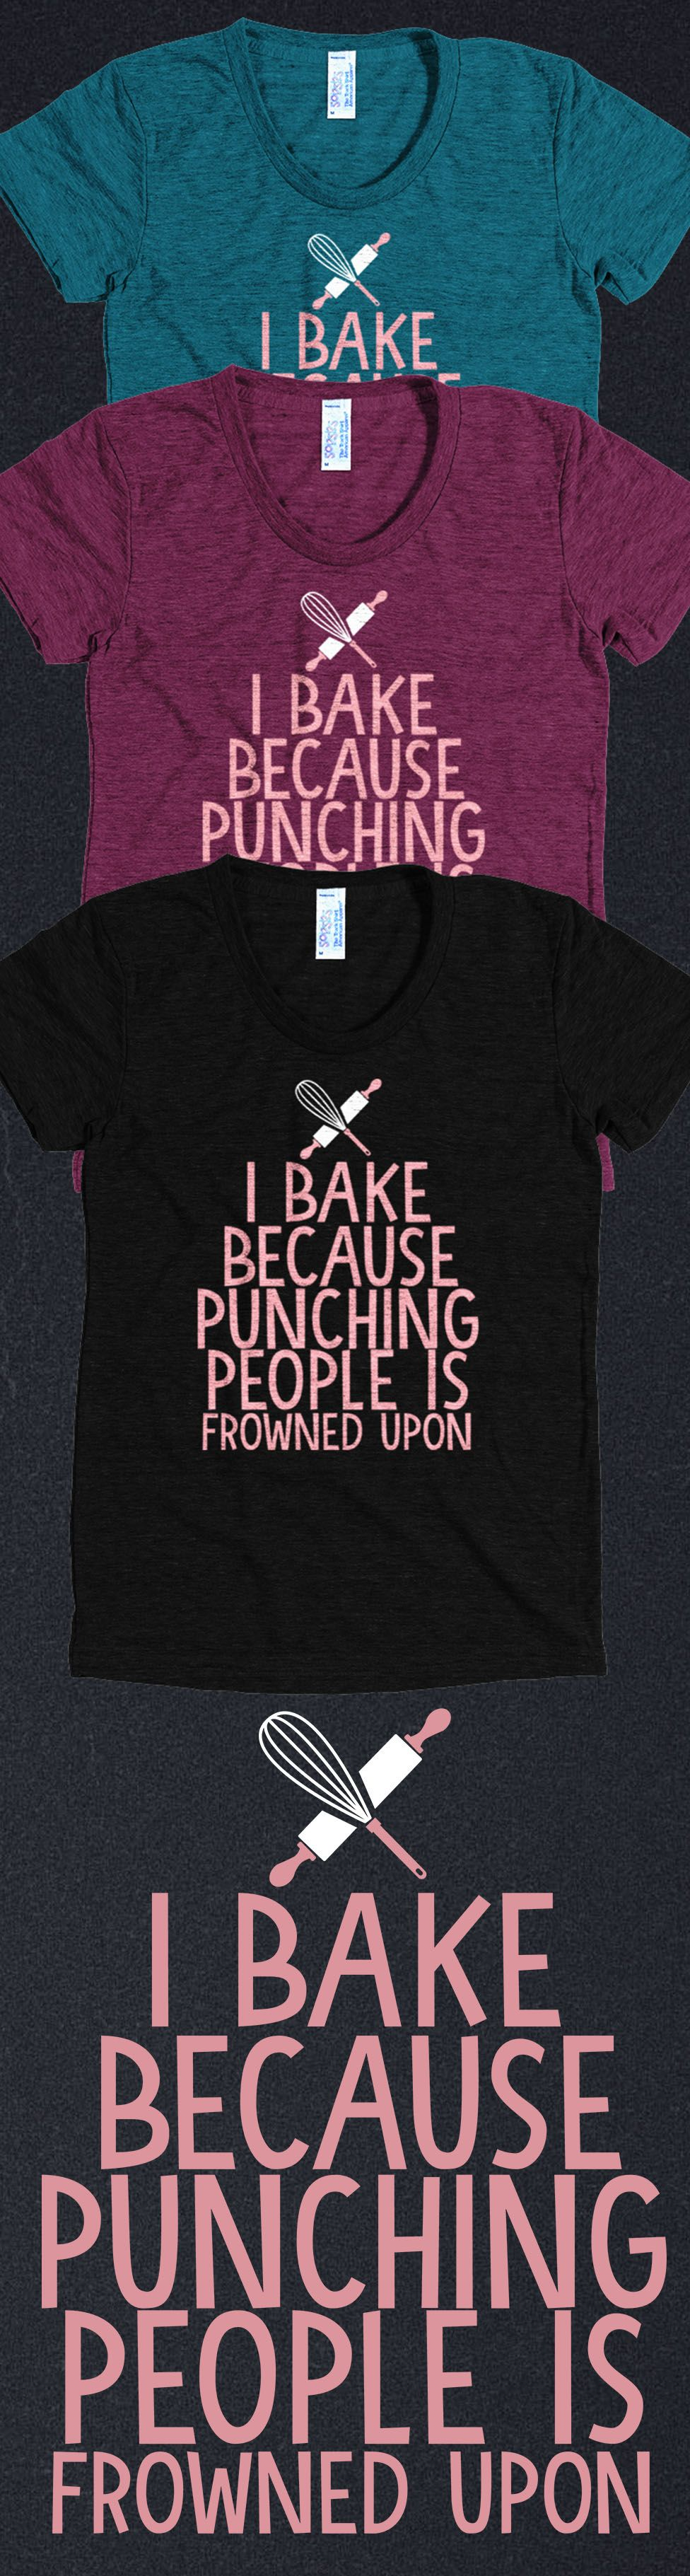 d3e2d9ad2 Love baking?! Check out this awesome baking t-shirt you will not find  anywhere else. Not sold in stores. Grab yours or gift it to a friend, you  will both ...